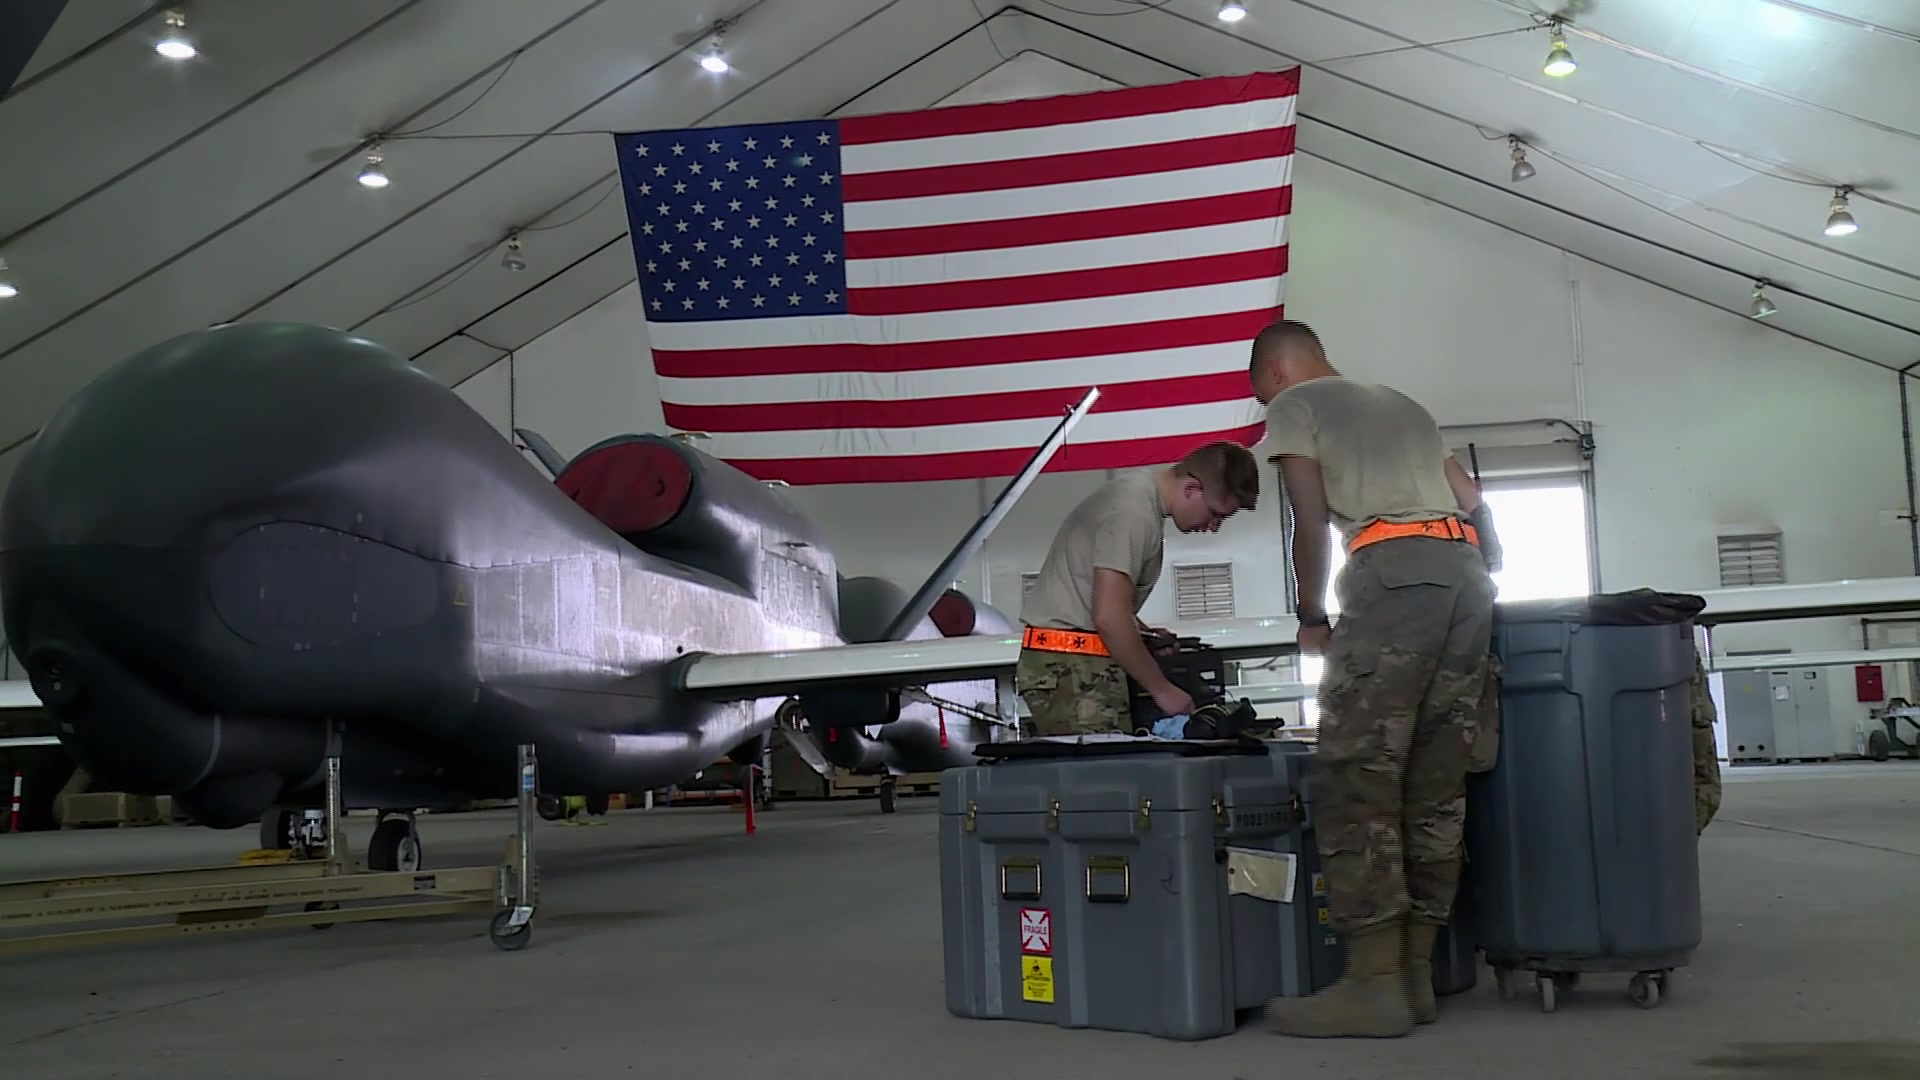 An RQ-4 Global Hawk pilot from the 99th Expeditionary Reconnaissance Squadron and a Crew Chief from the 380th Hawk Aircraft Maintenance Unit, share what they do for the mission every day, here at Al Dhafra Air Base, UAE.